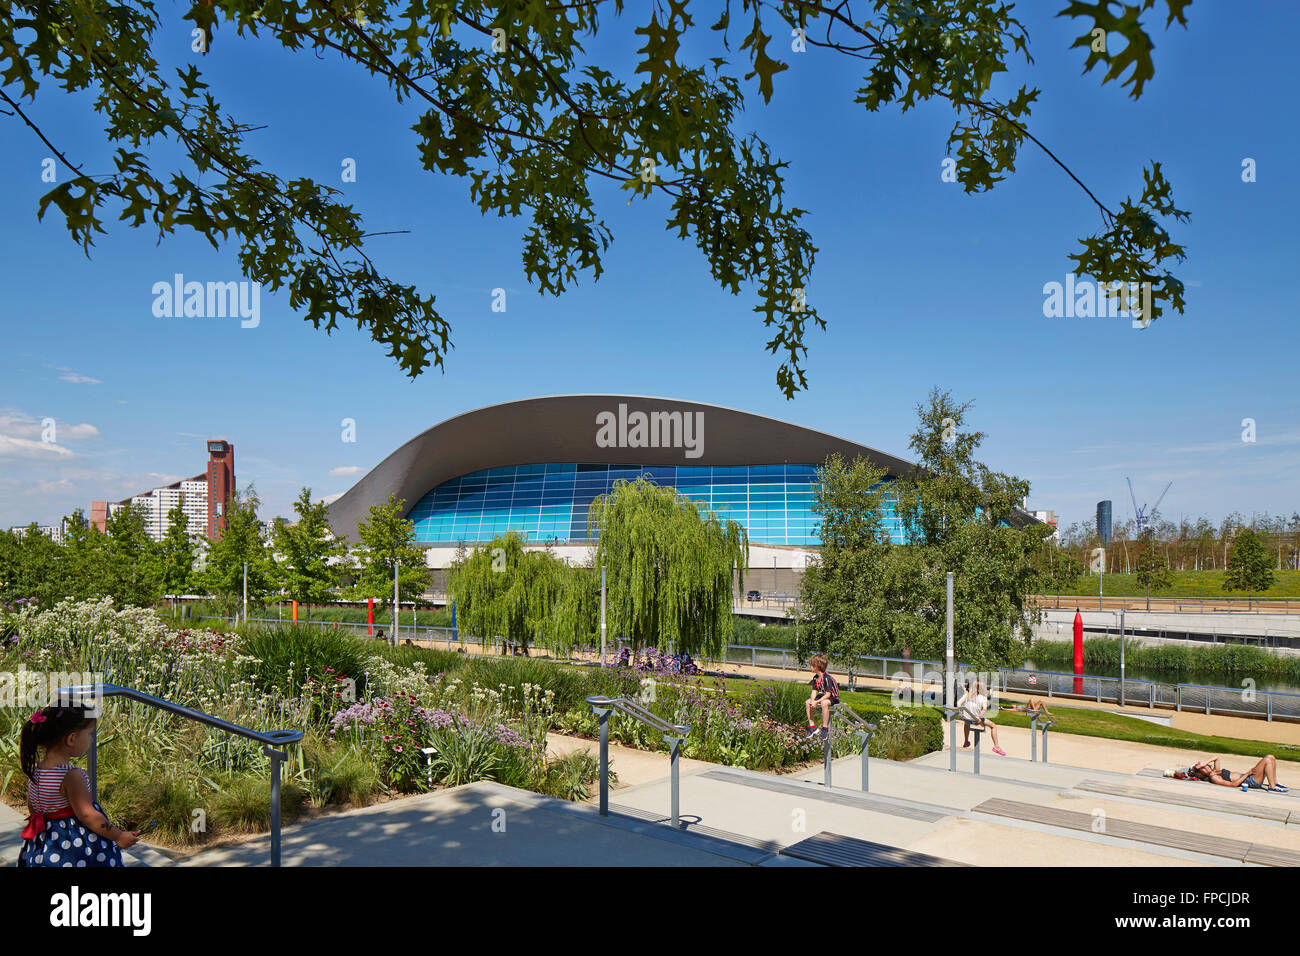 Landscape gardens, and aquatics centre designed by Zaha Hadid in the Olympic park in London. - Stock Image